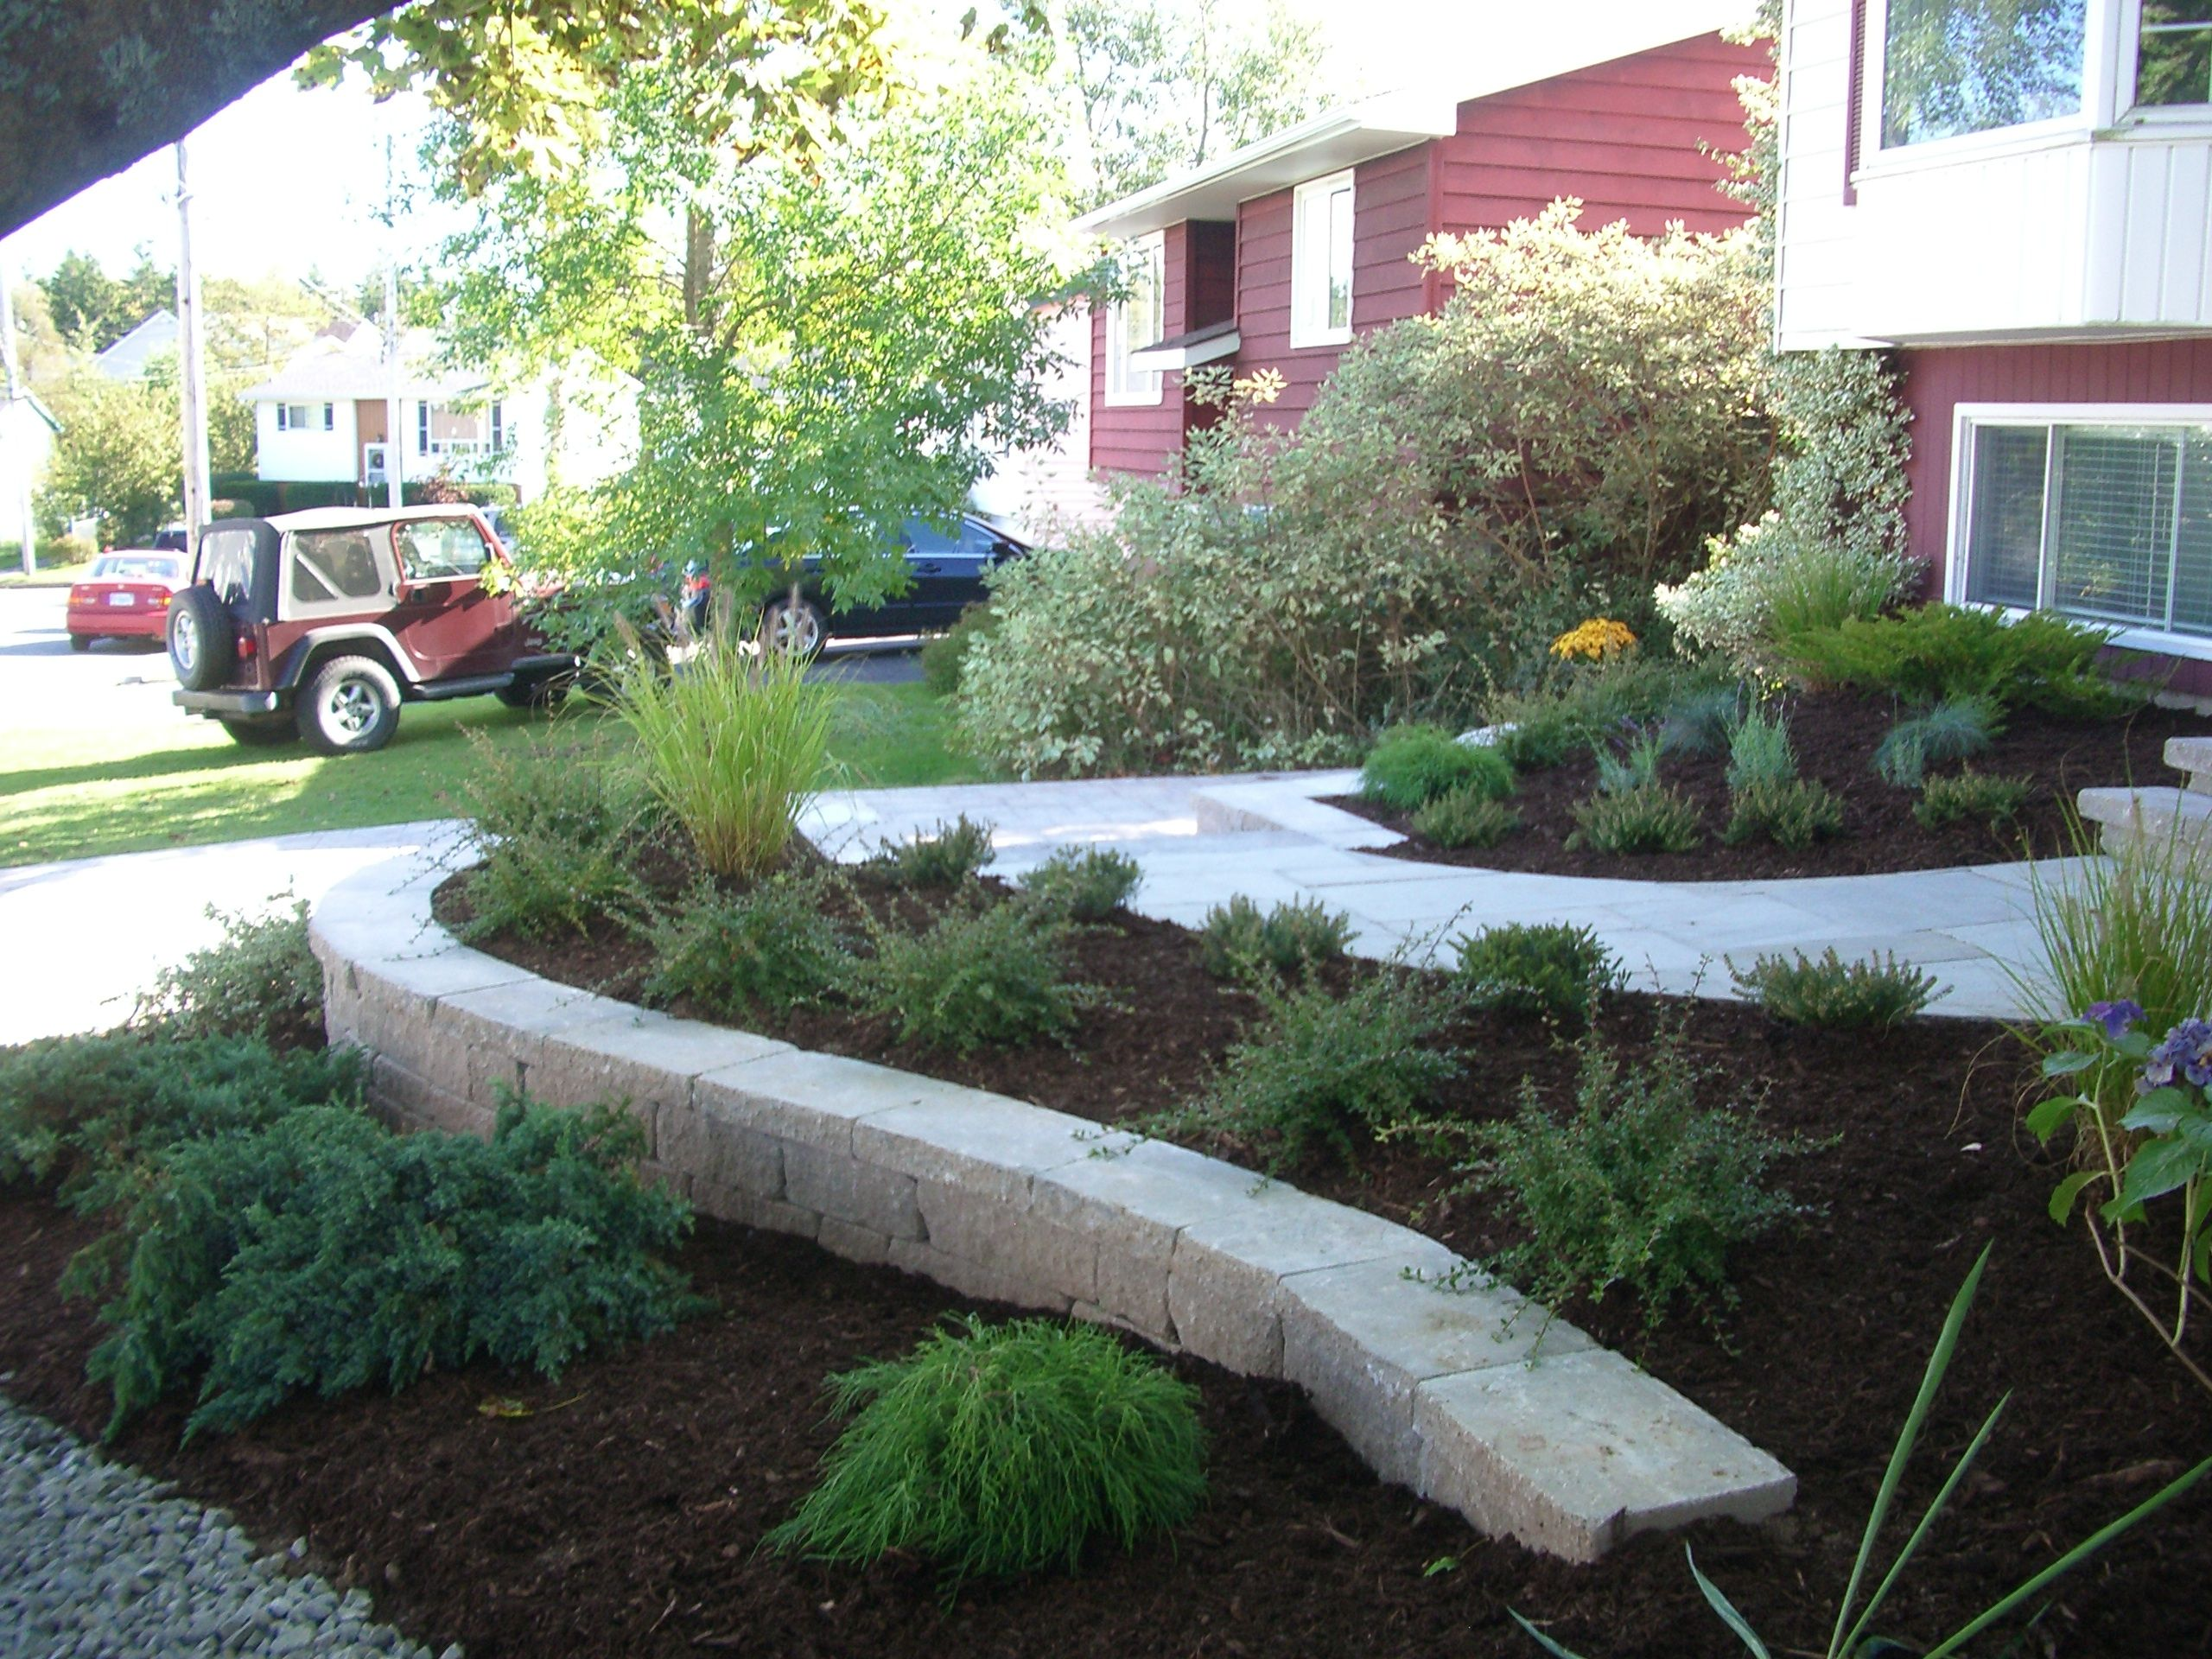 plan-lawn-curb-appeal-landscaping-ideas-photograph.jpg (2560×1920)